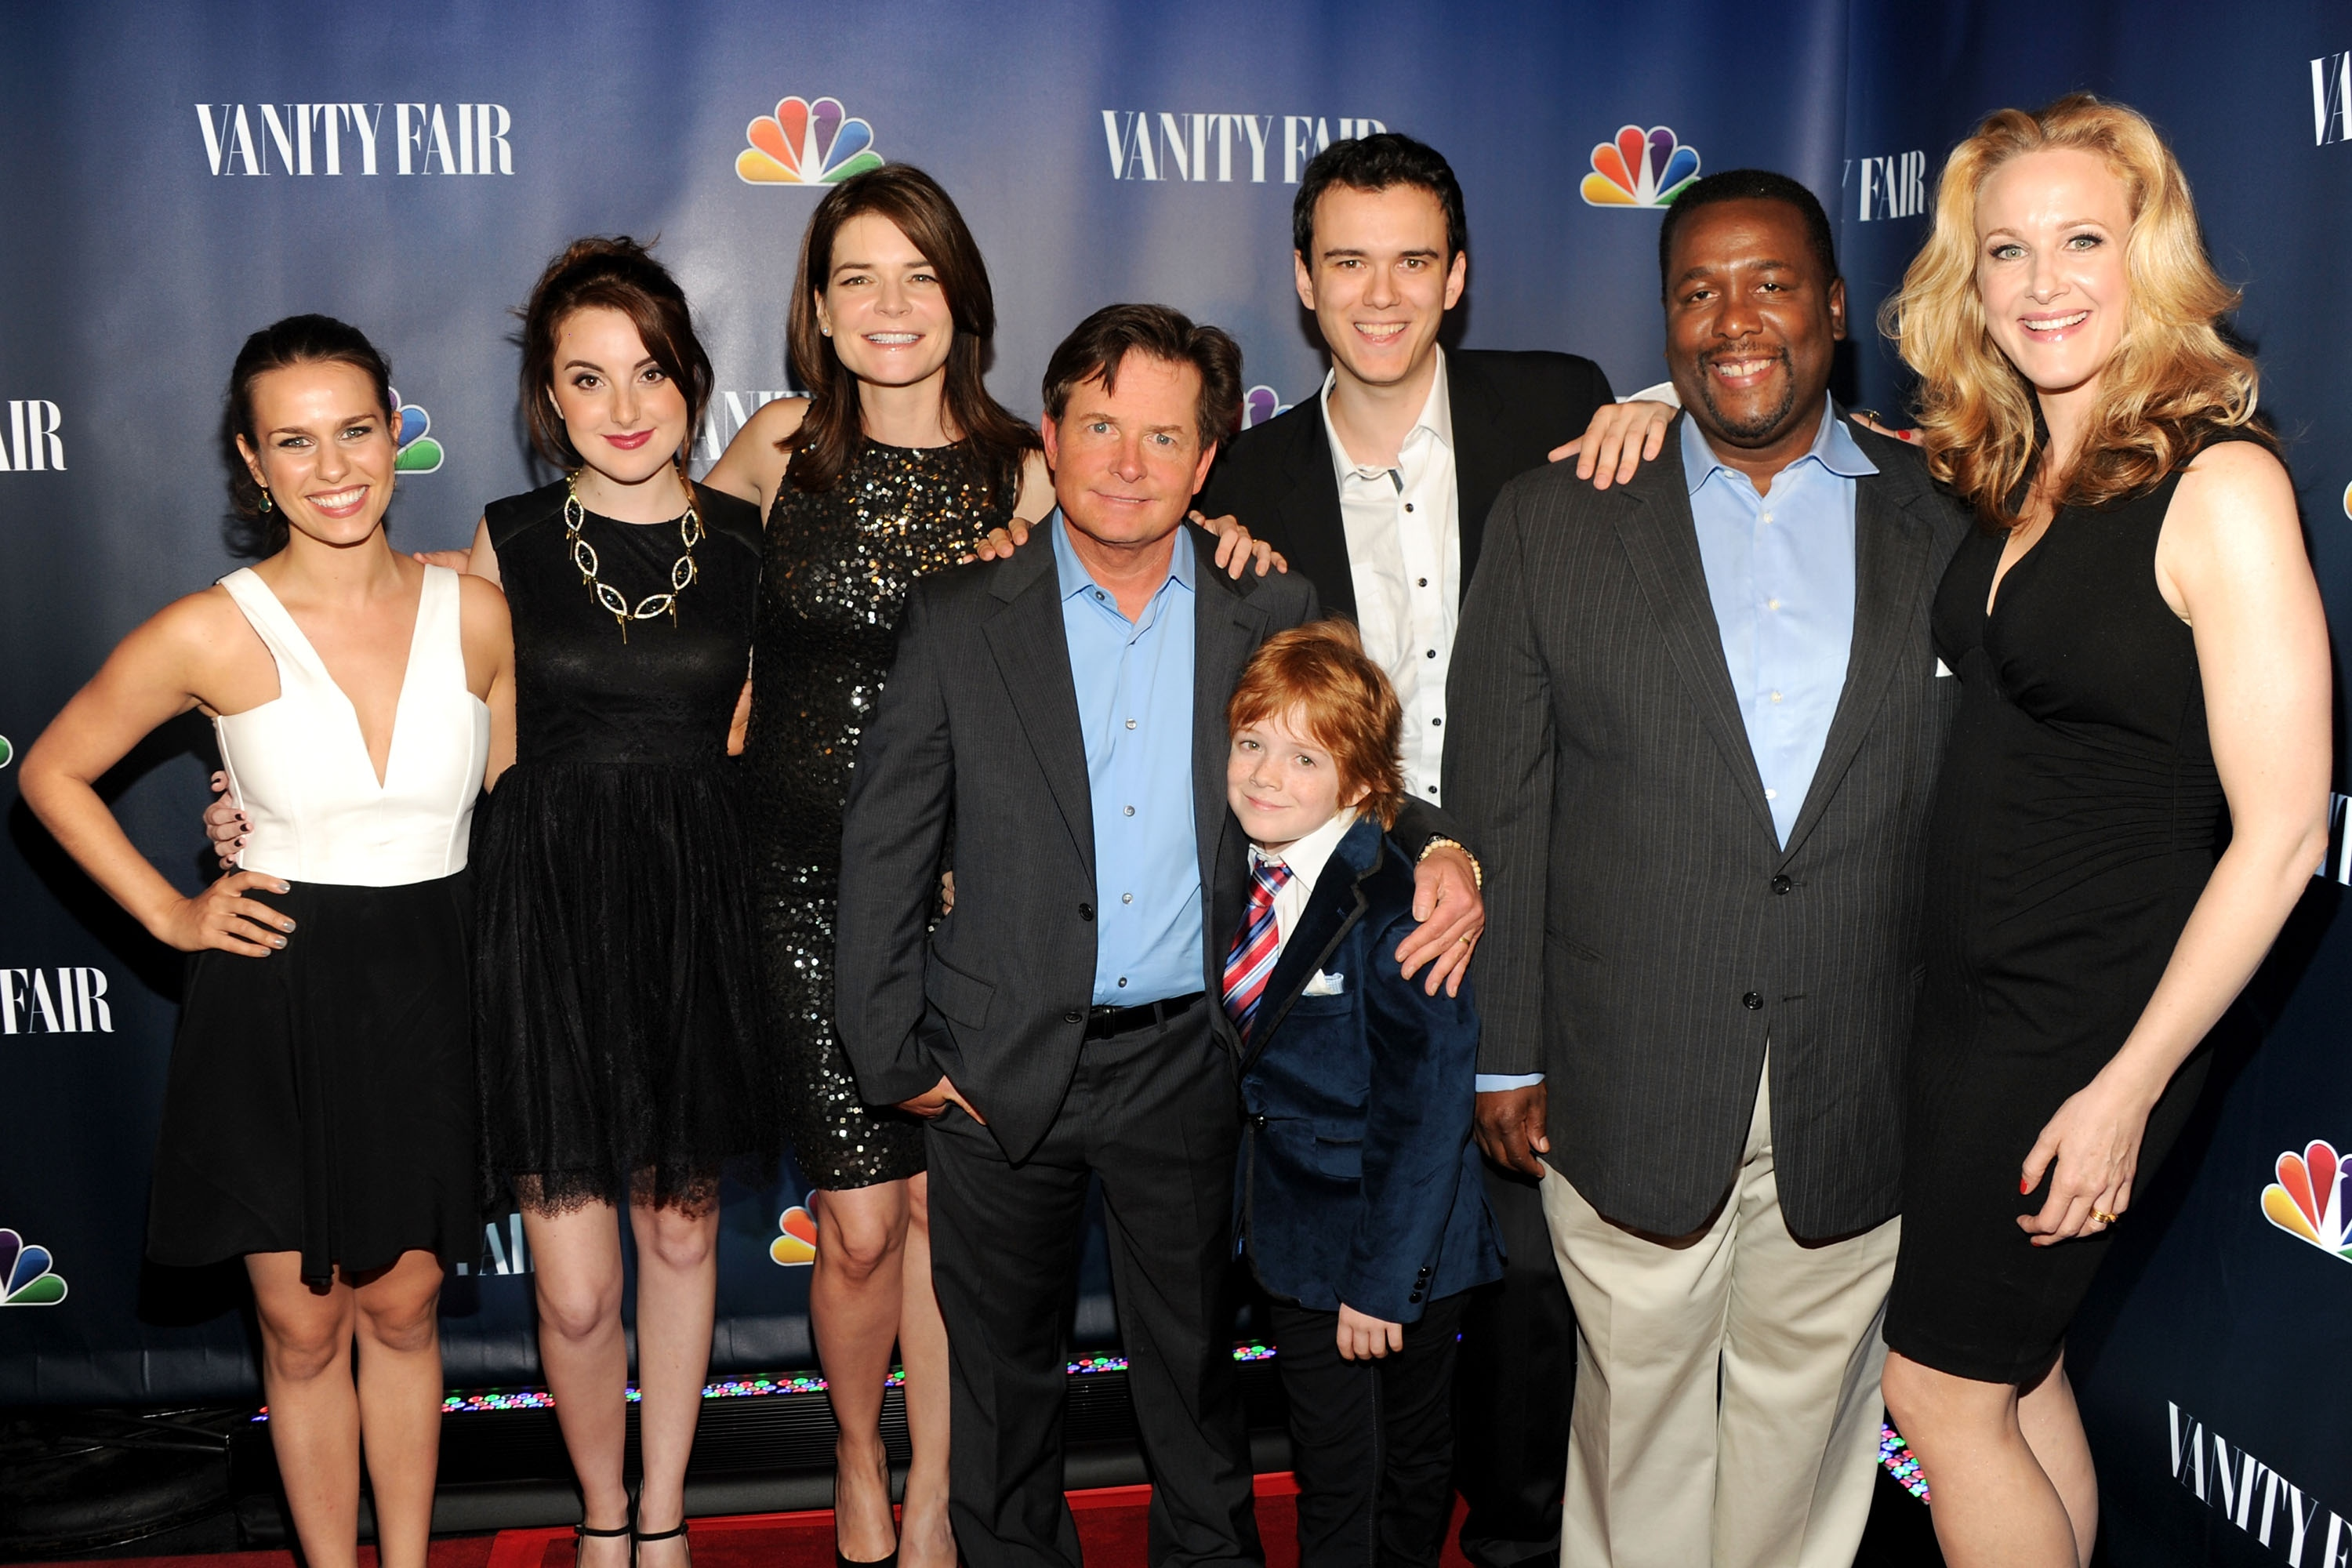 Ana Nogueira, Juliette Goglia, Michael J. Fox, Jack Gore, Conor Romero, Wendell Pierce, and Katie Finneran attend NBC's 2013 Fall Launch Party on September 16, 2013 in New York City.